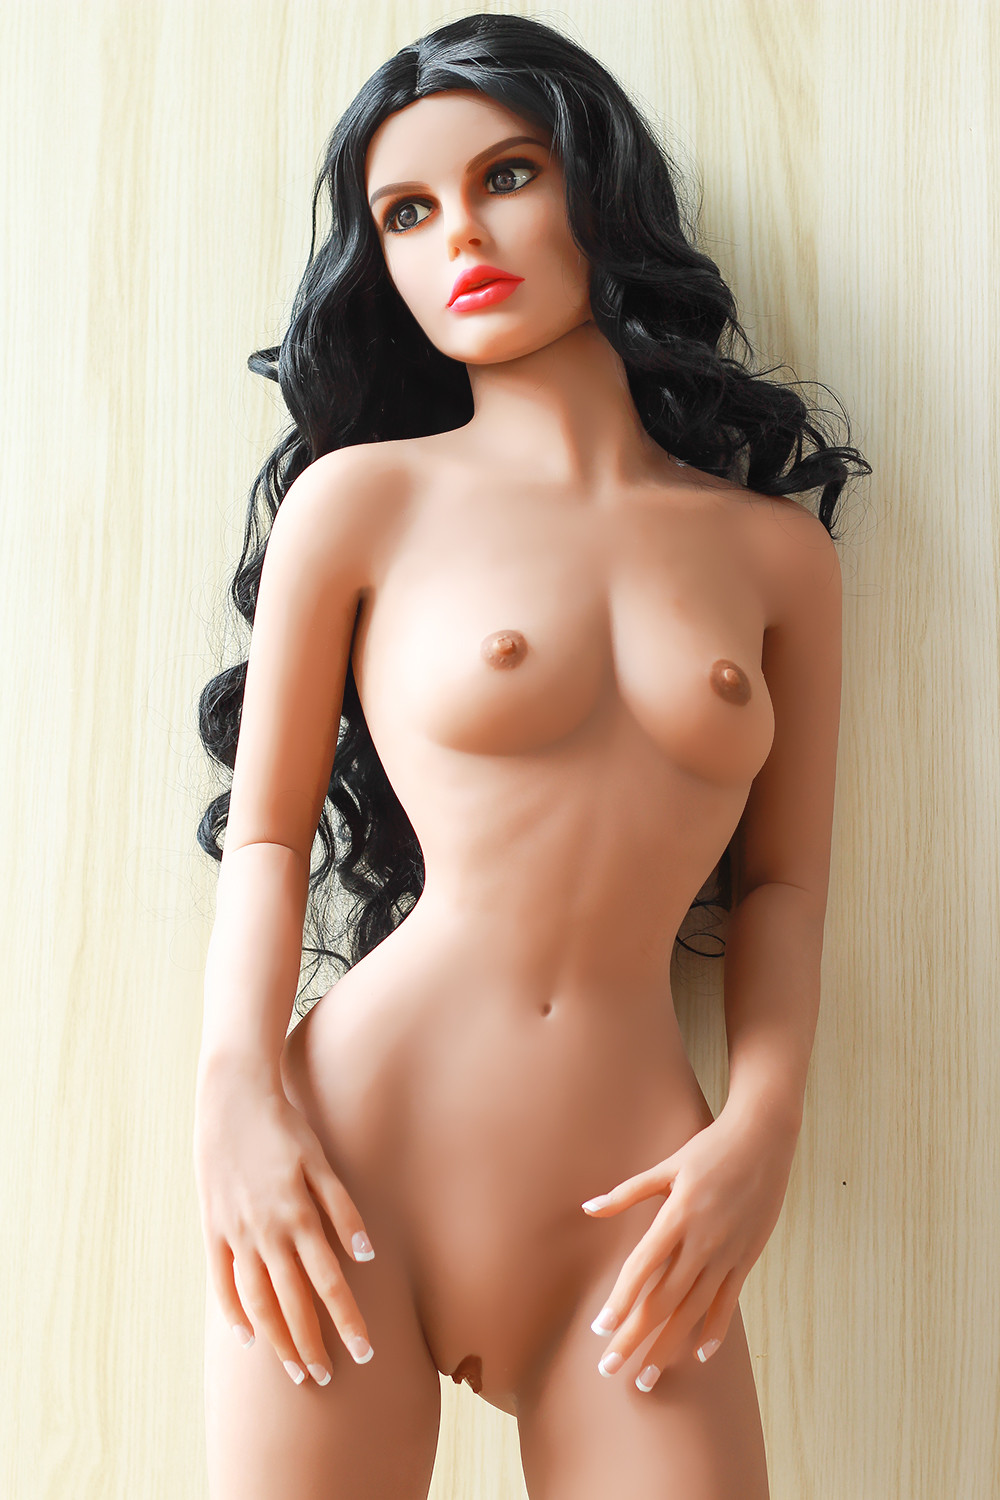 155cm flatlovedoll tpe small breast chinese doll for sex